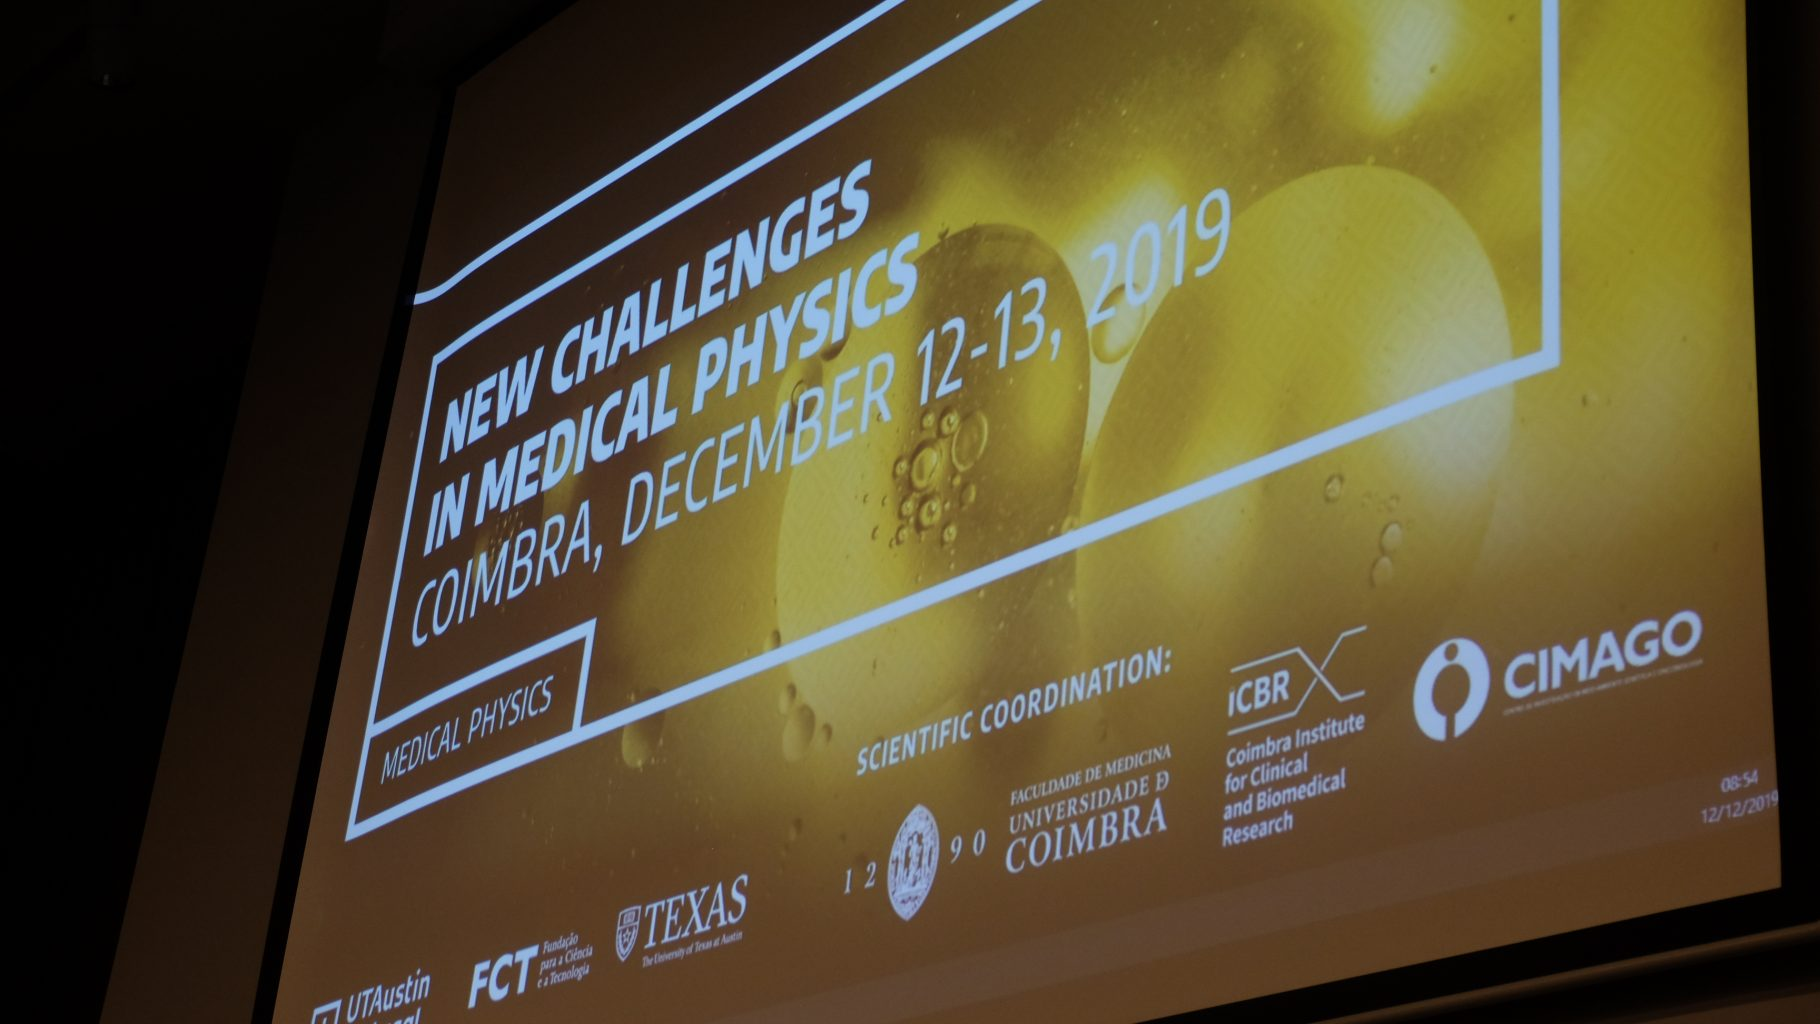 New Challenges in Medical Physics Conference